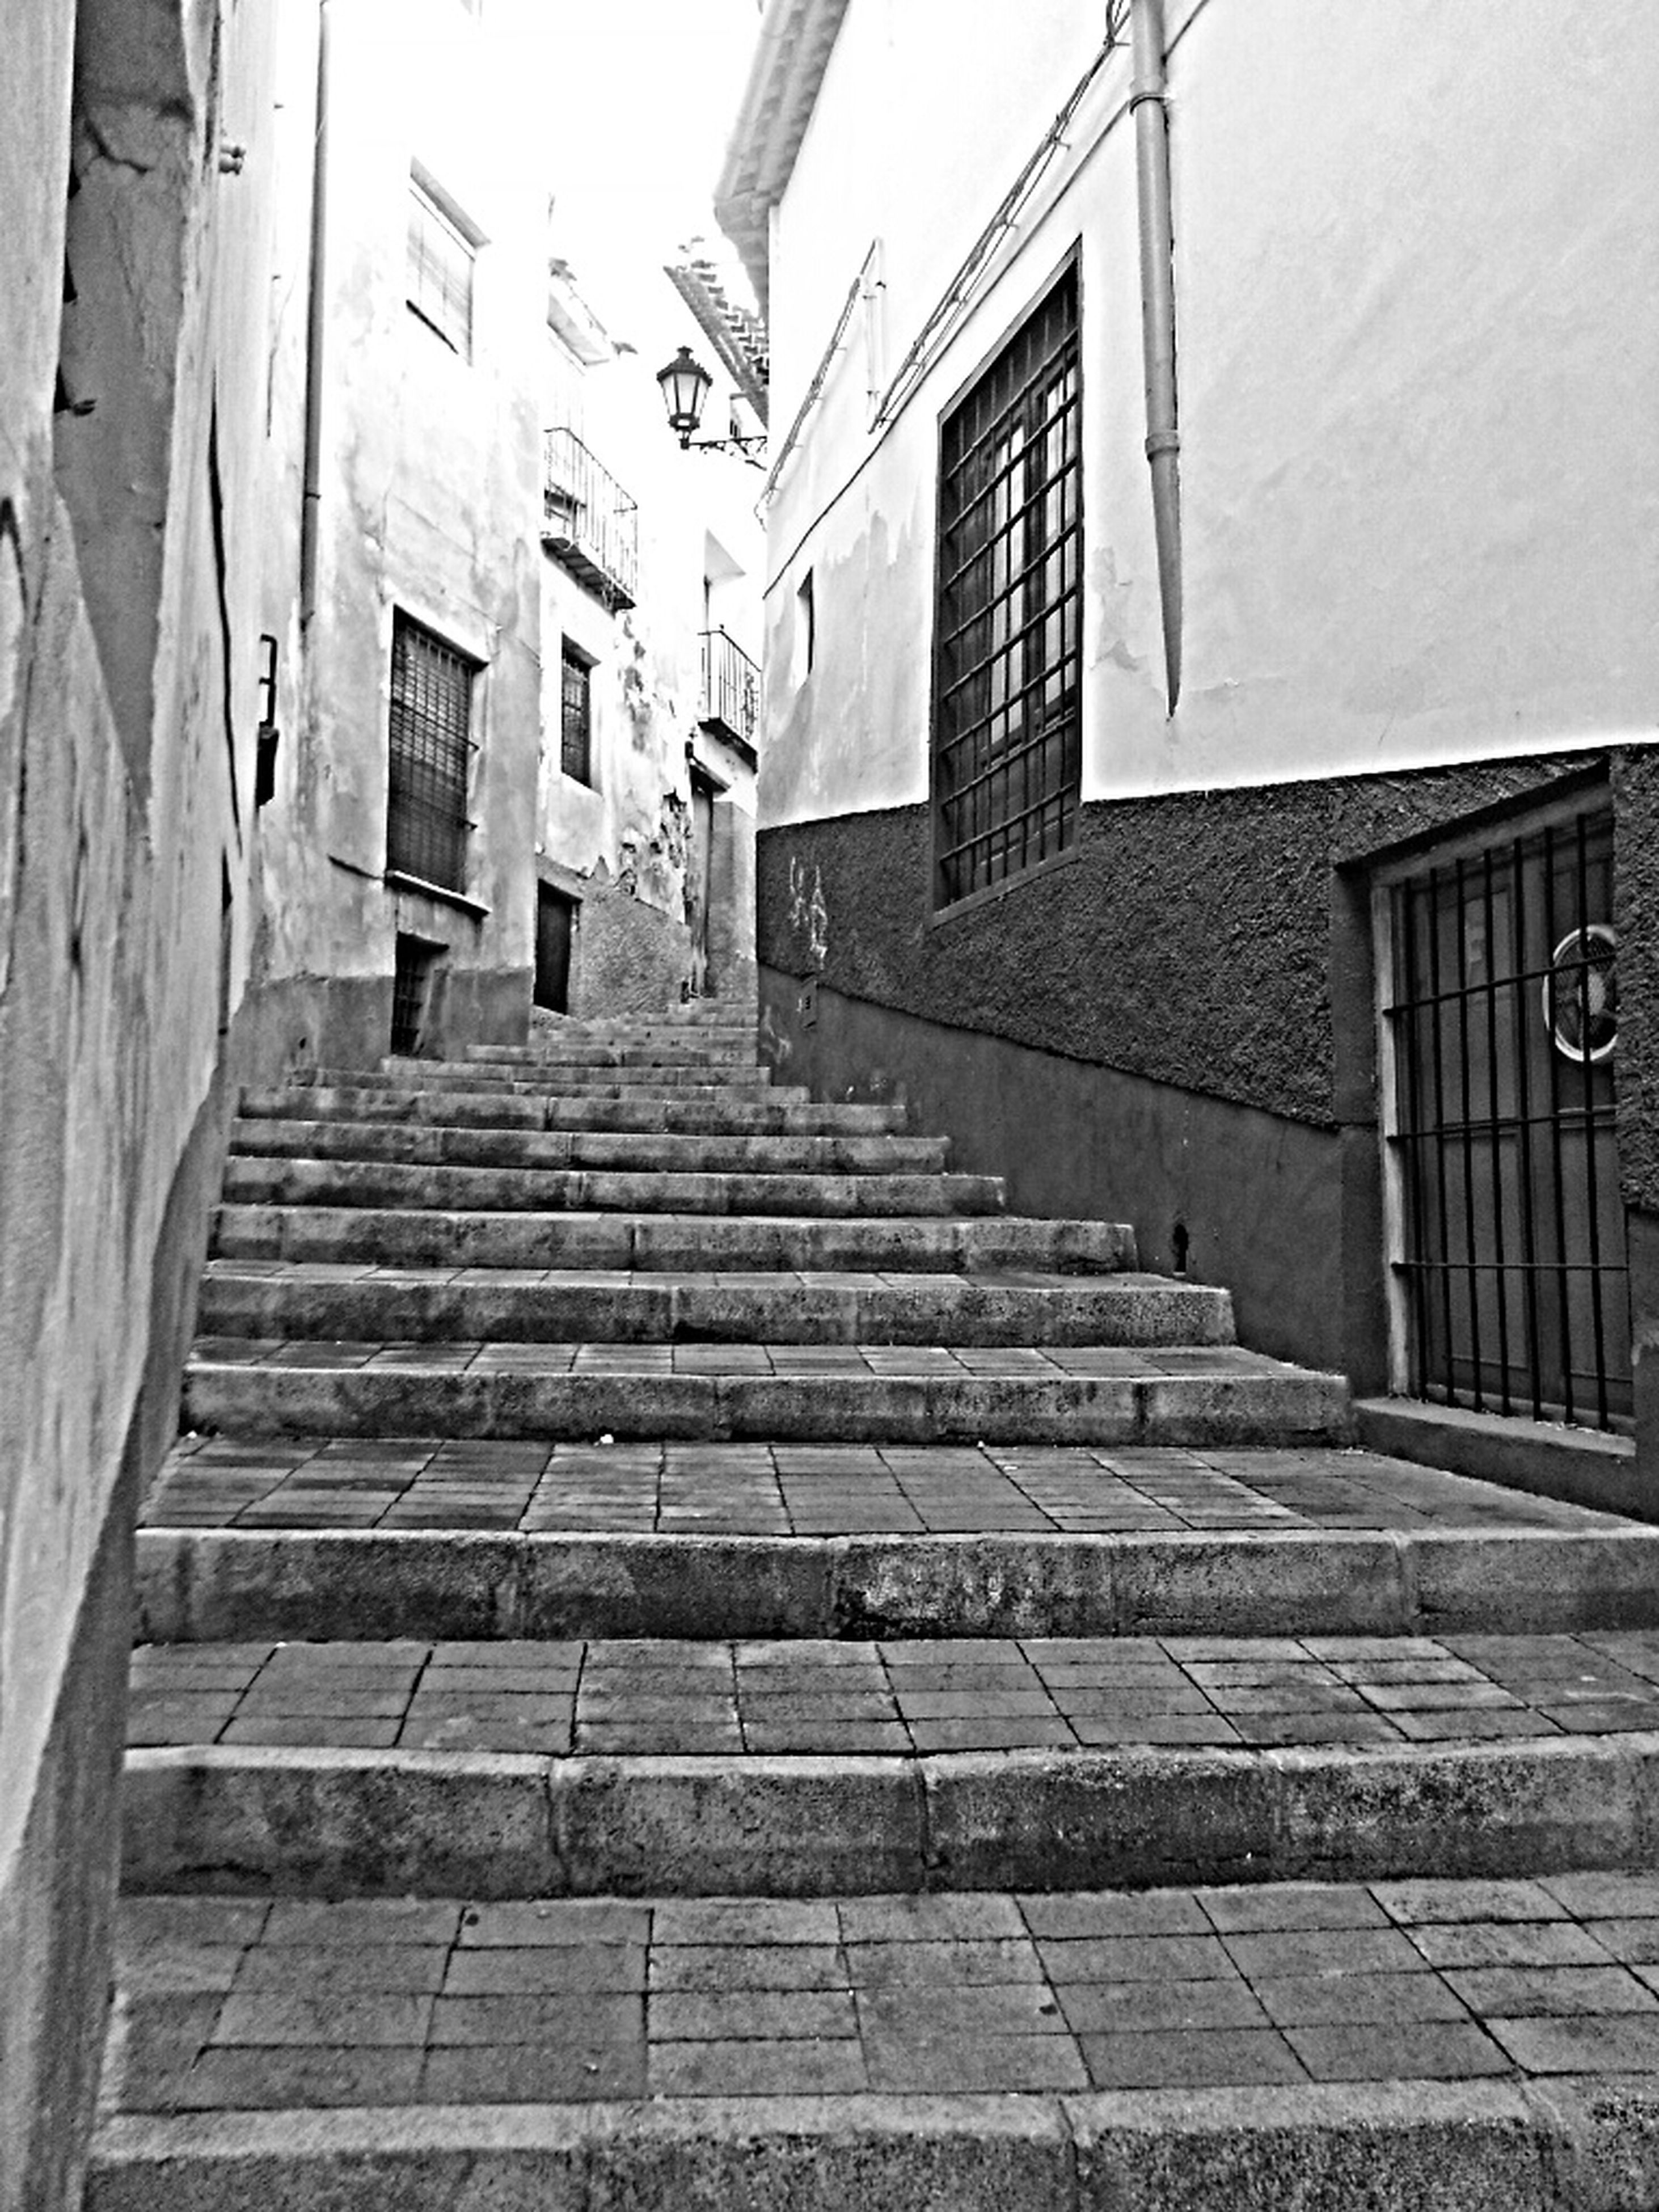 building exterior, architecture, built structure, the way forward, steps, building, residential structure, residential building, steps and staircases, house, staircase, railing, low angle view, city, street, cobblestone, diminishing perspective, day, wall - building feature, street light